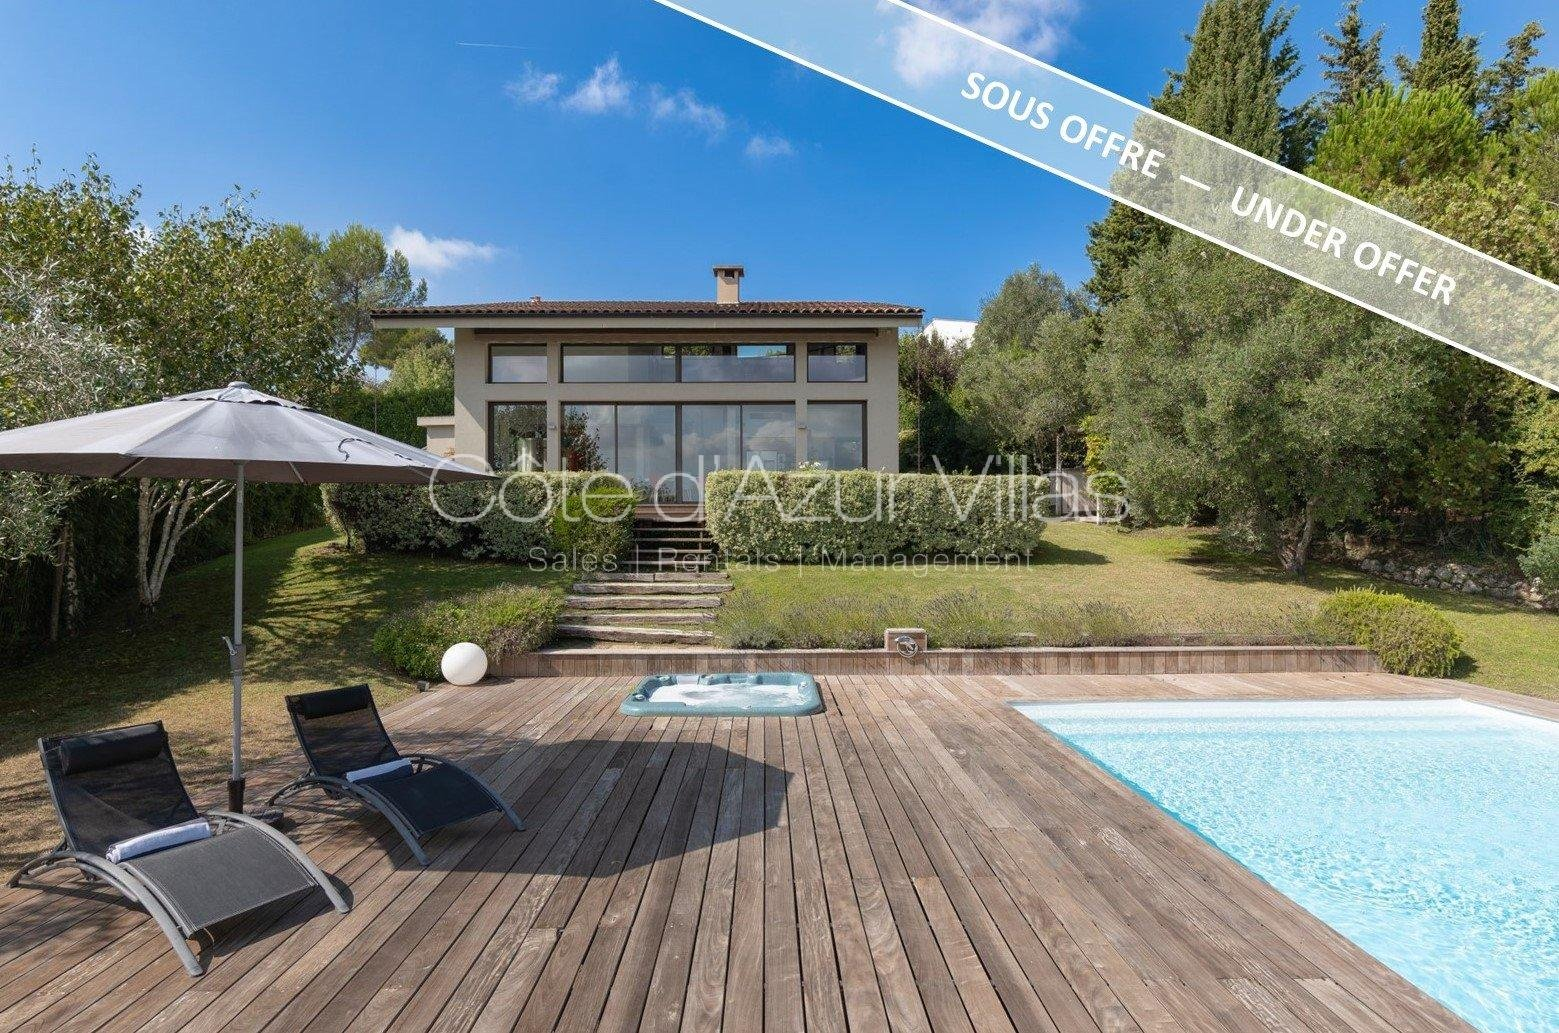 Splendid contemporary villa with panoramic views over the mountains and the village